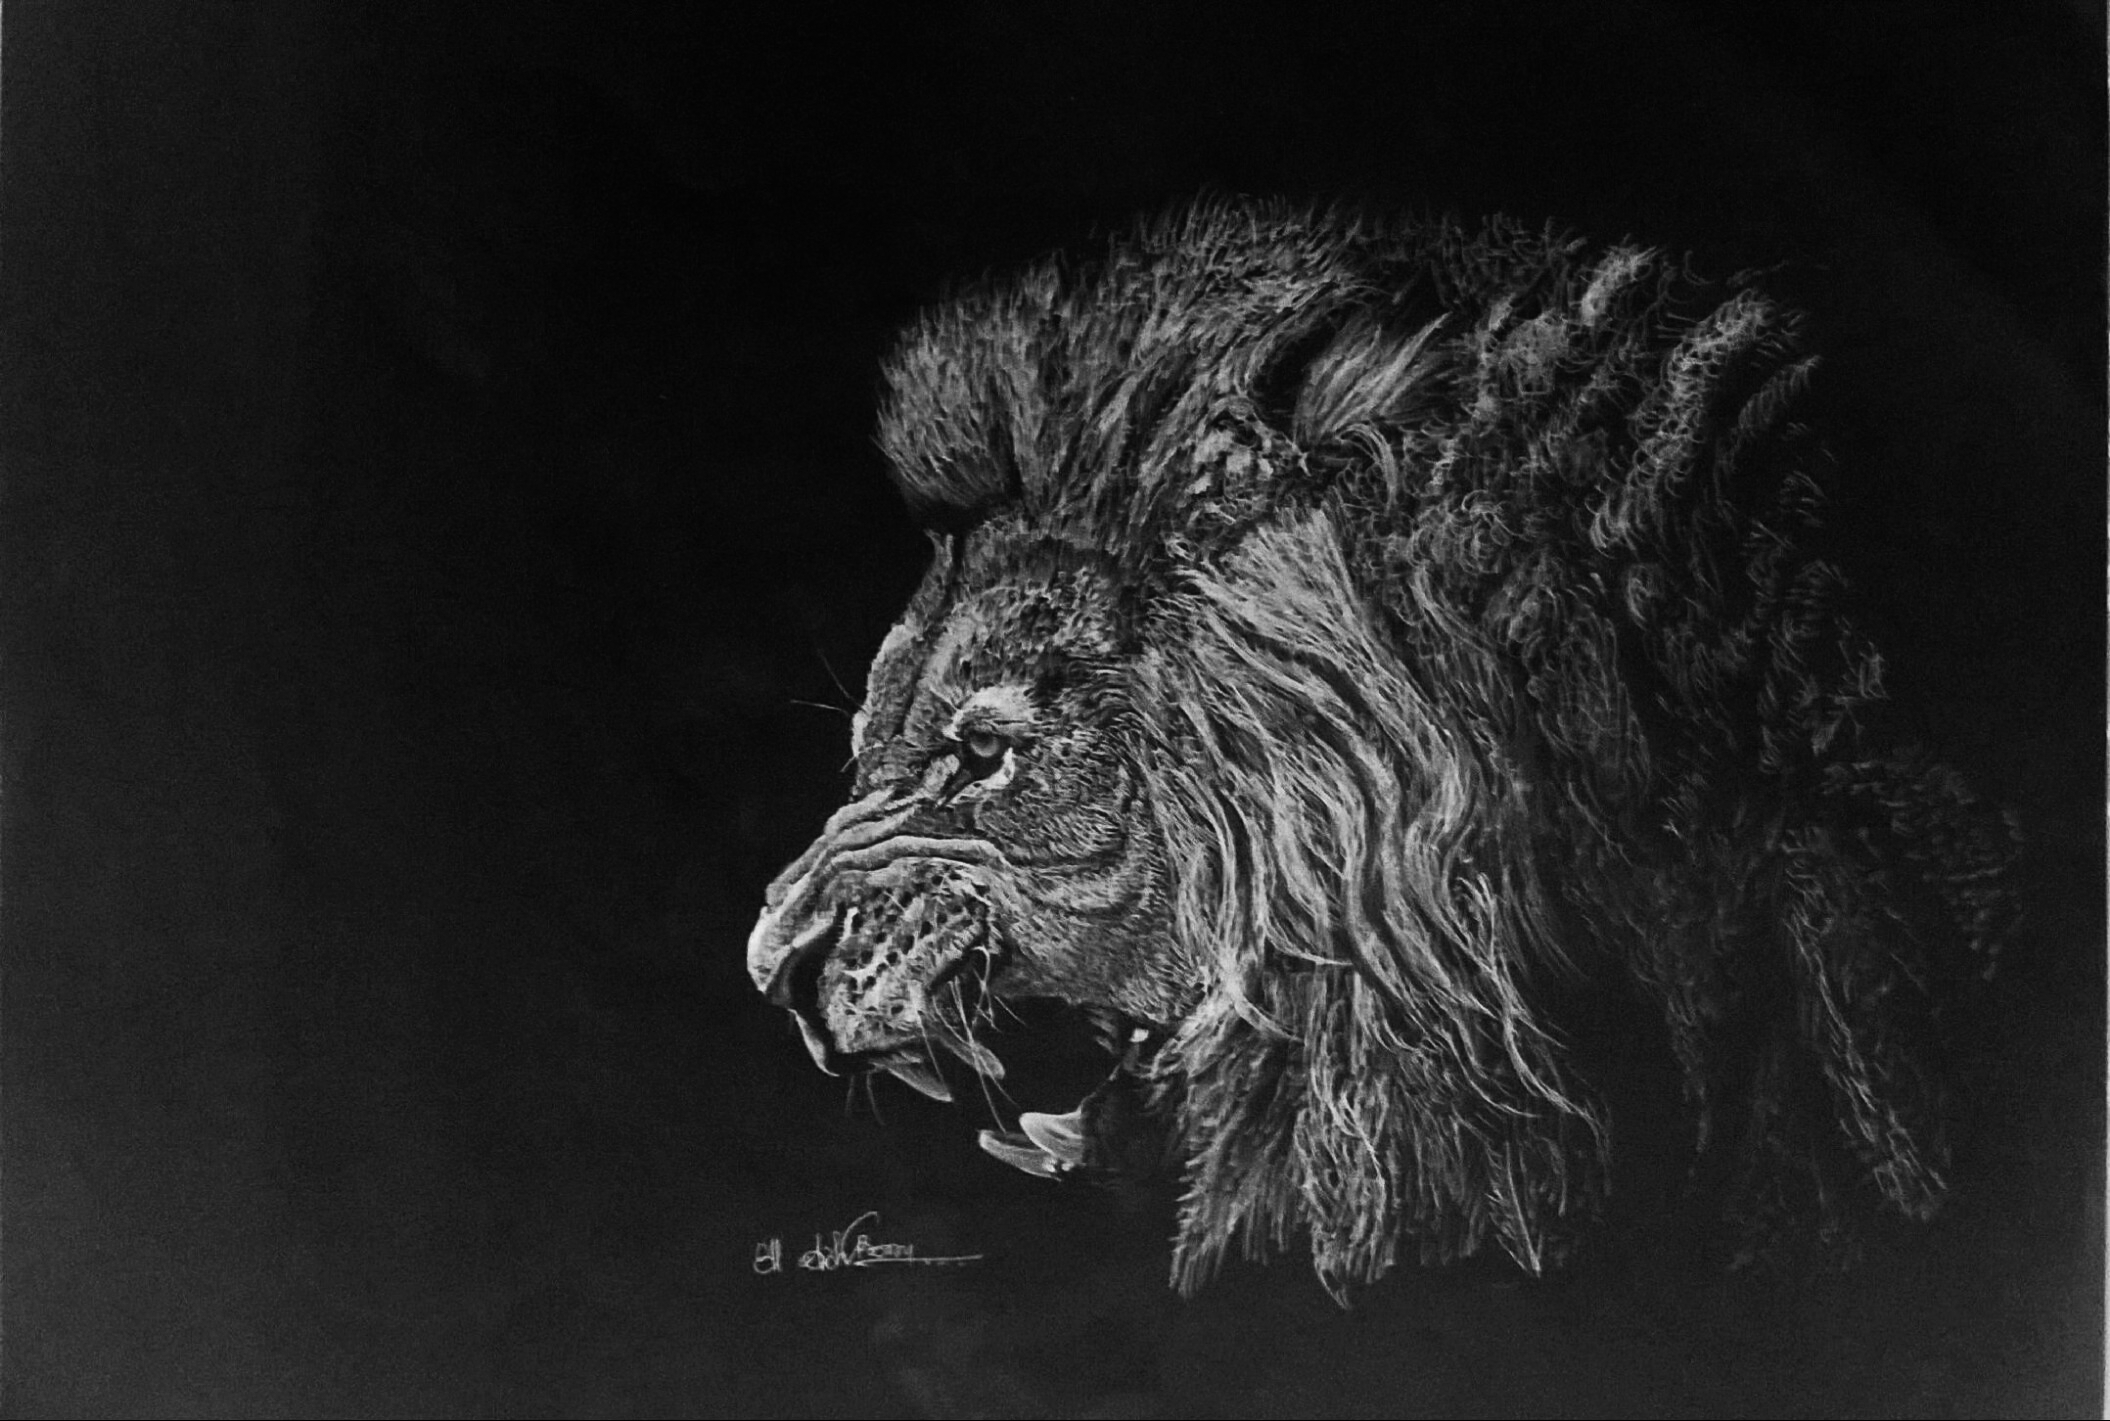 Lion Roaring Drawing Side View - photo#7